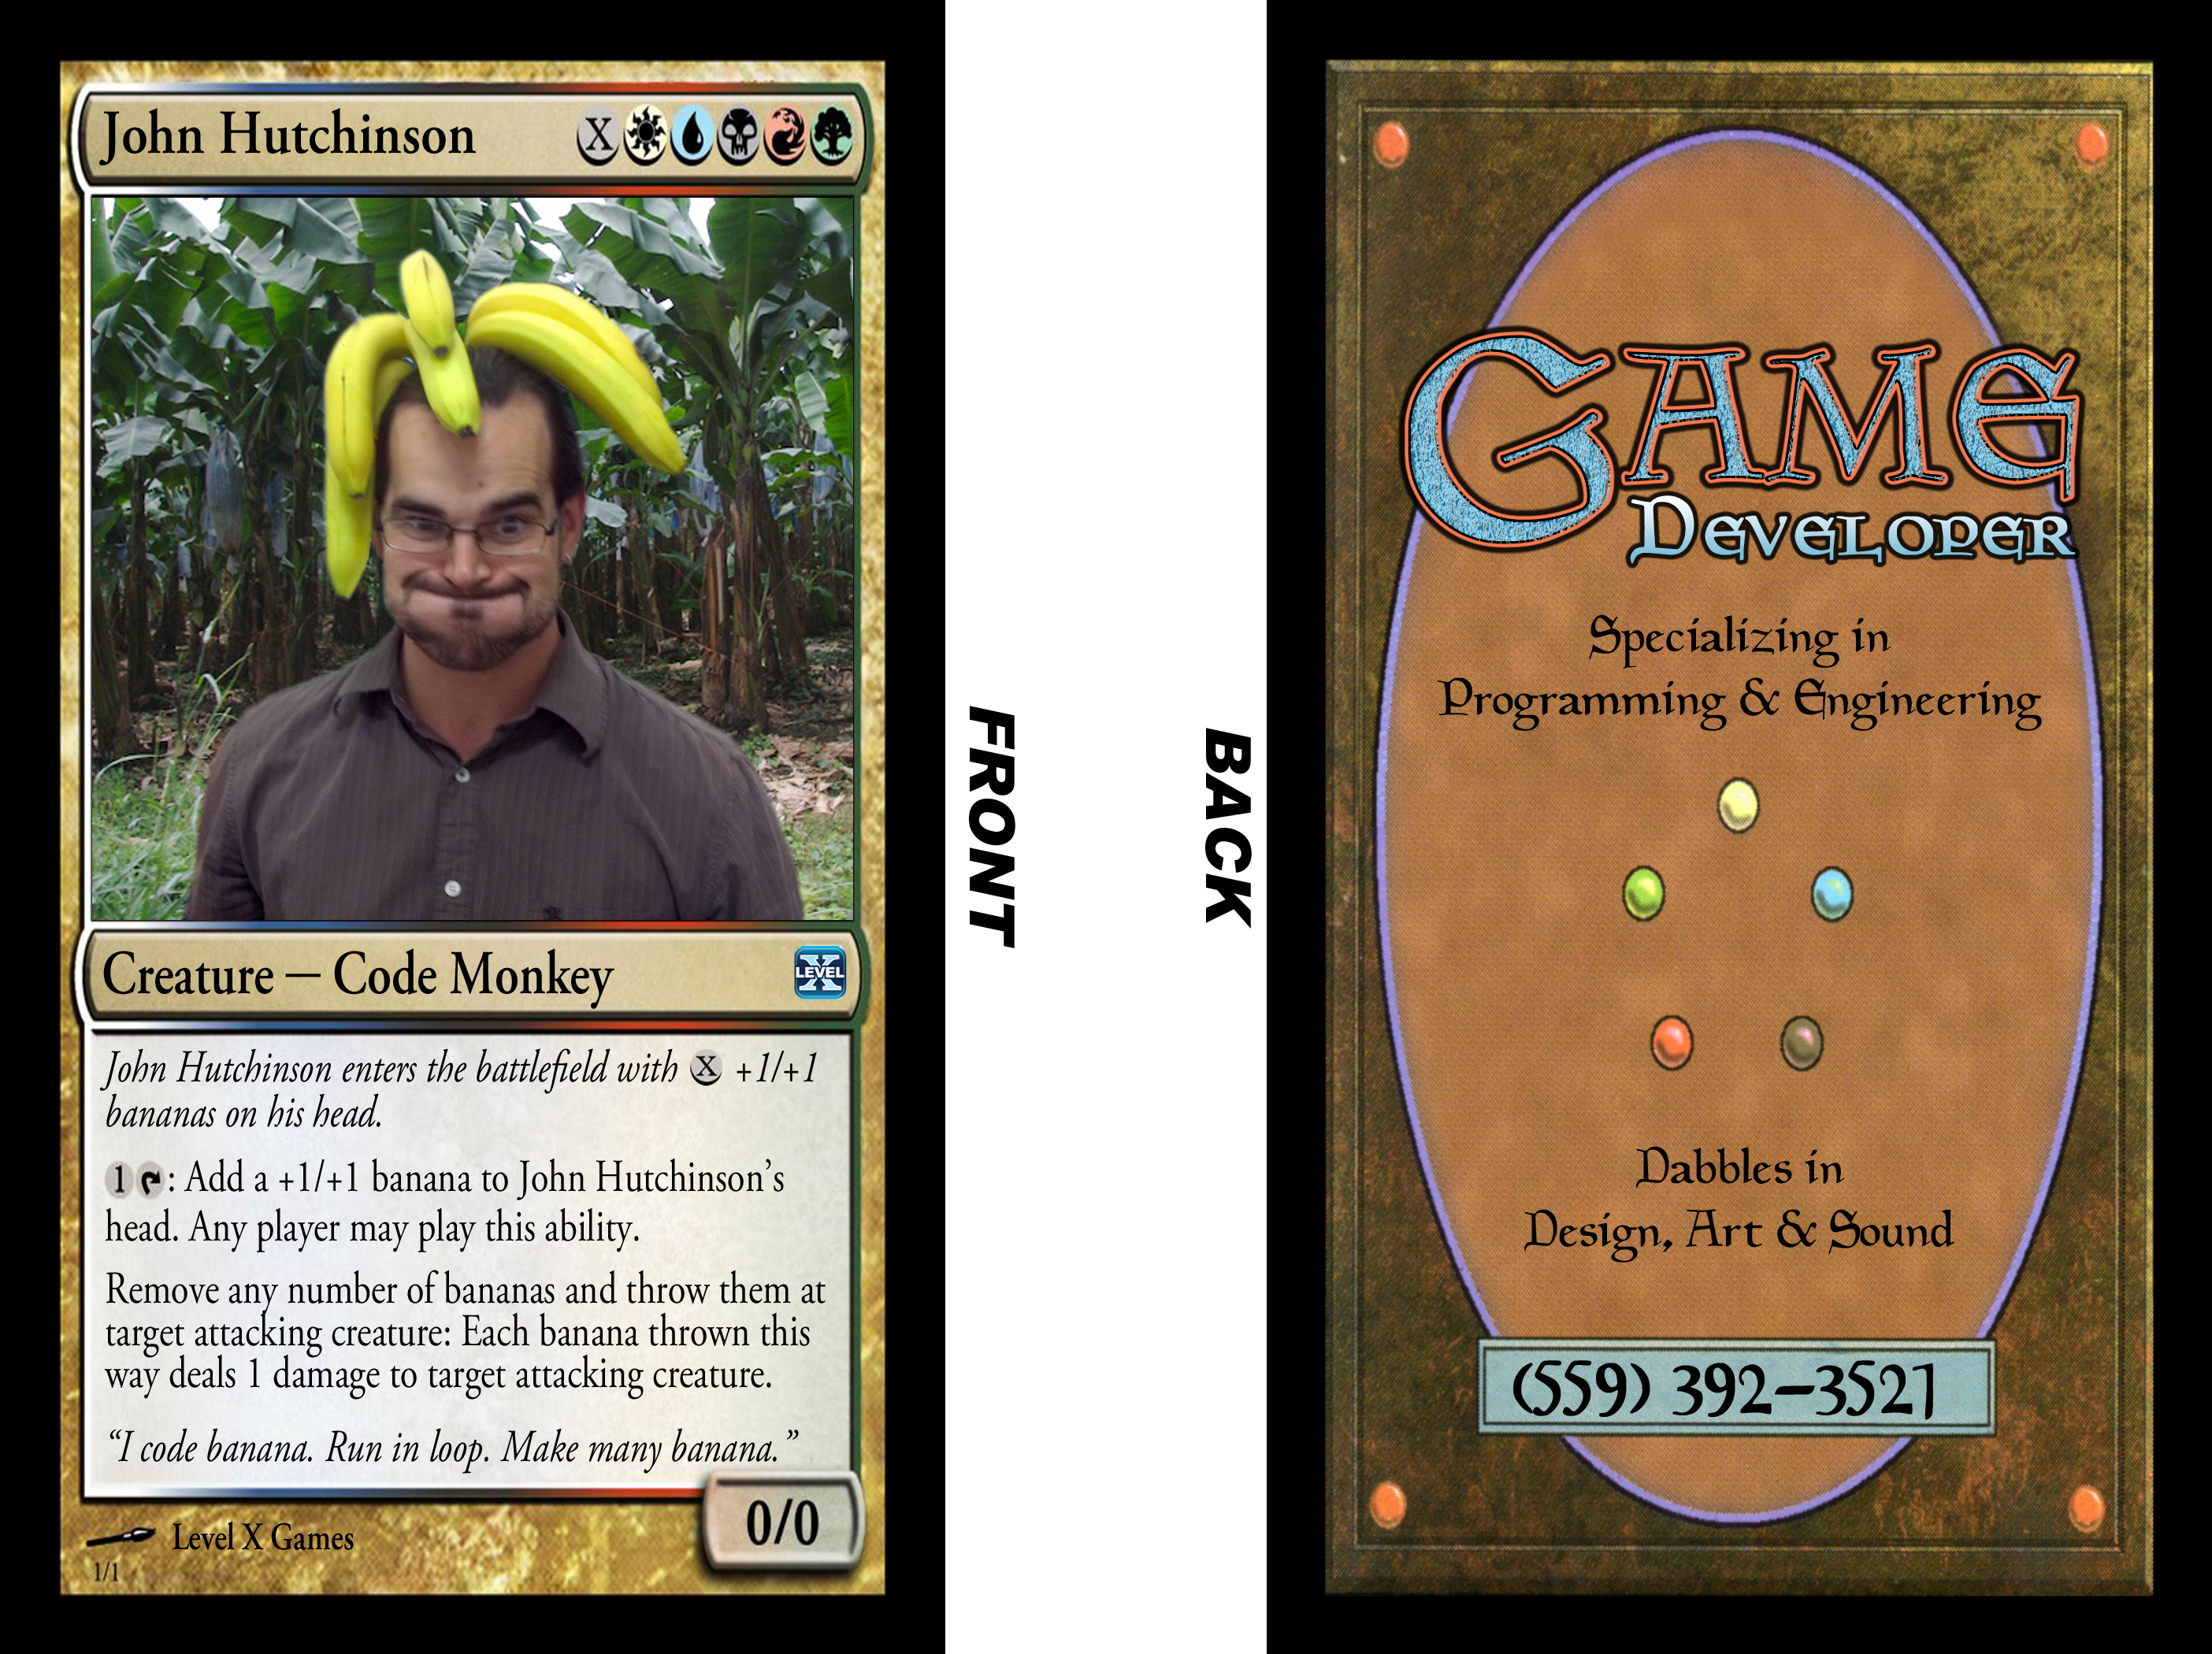 Magic The Gathering: Parody Business Cards - Level X Games